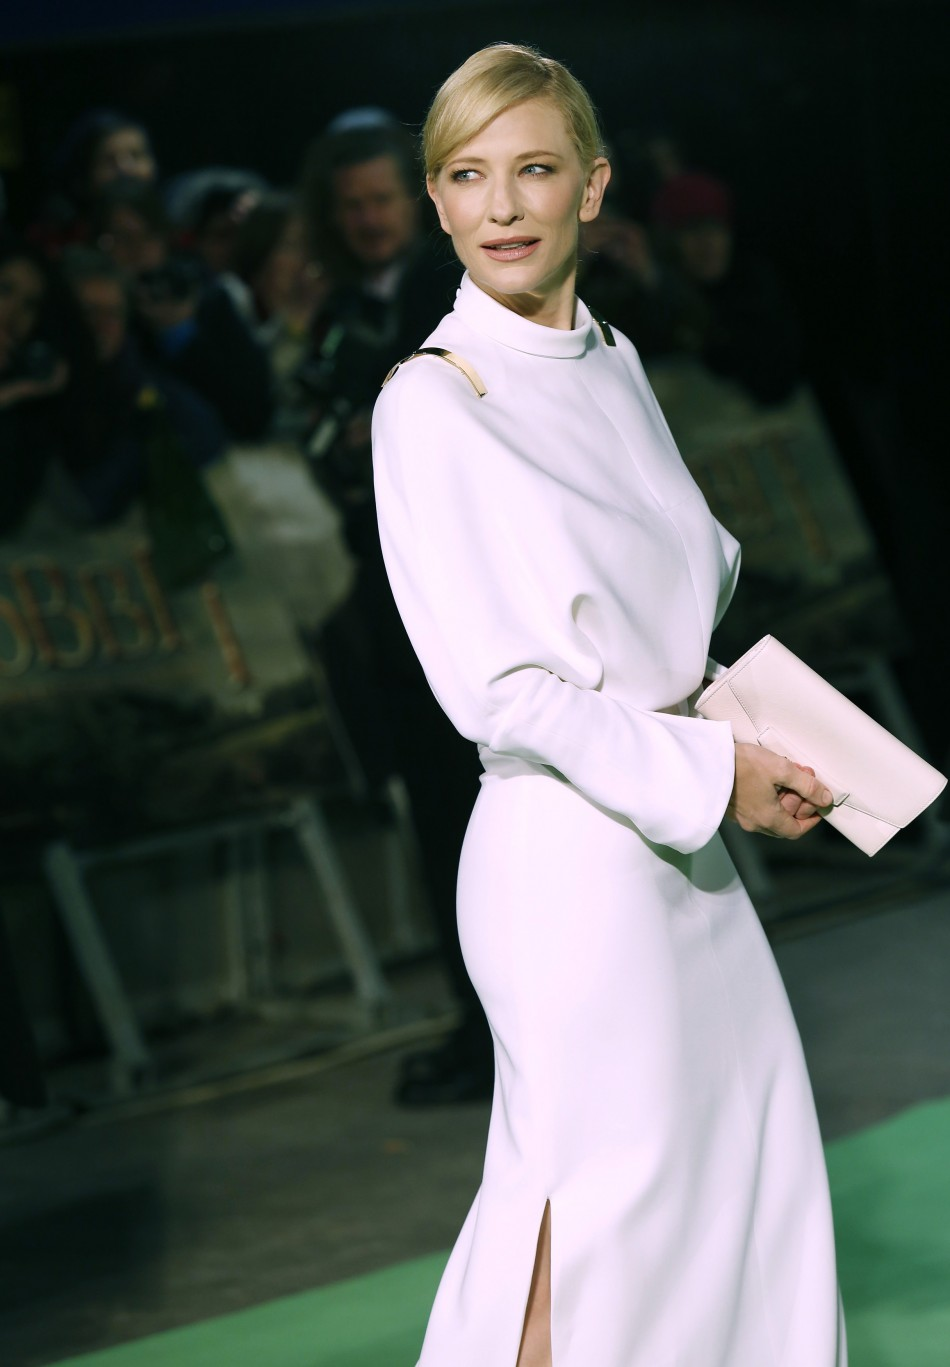 Actress Cate Blanchett arrives for the royal premiere of the film The Hobbit - An Unexpected Journey in central London